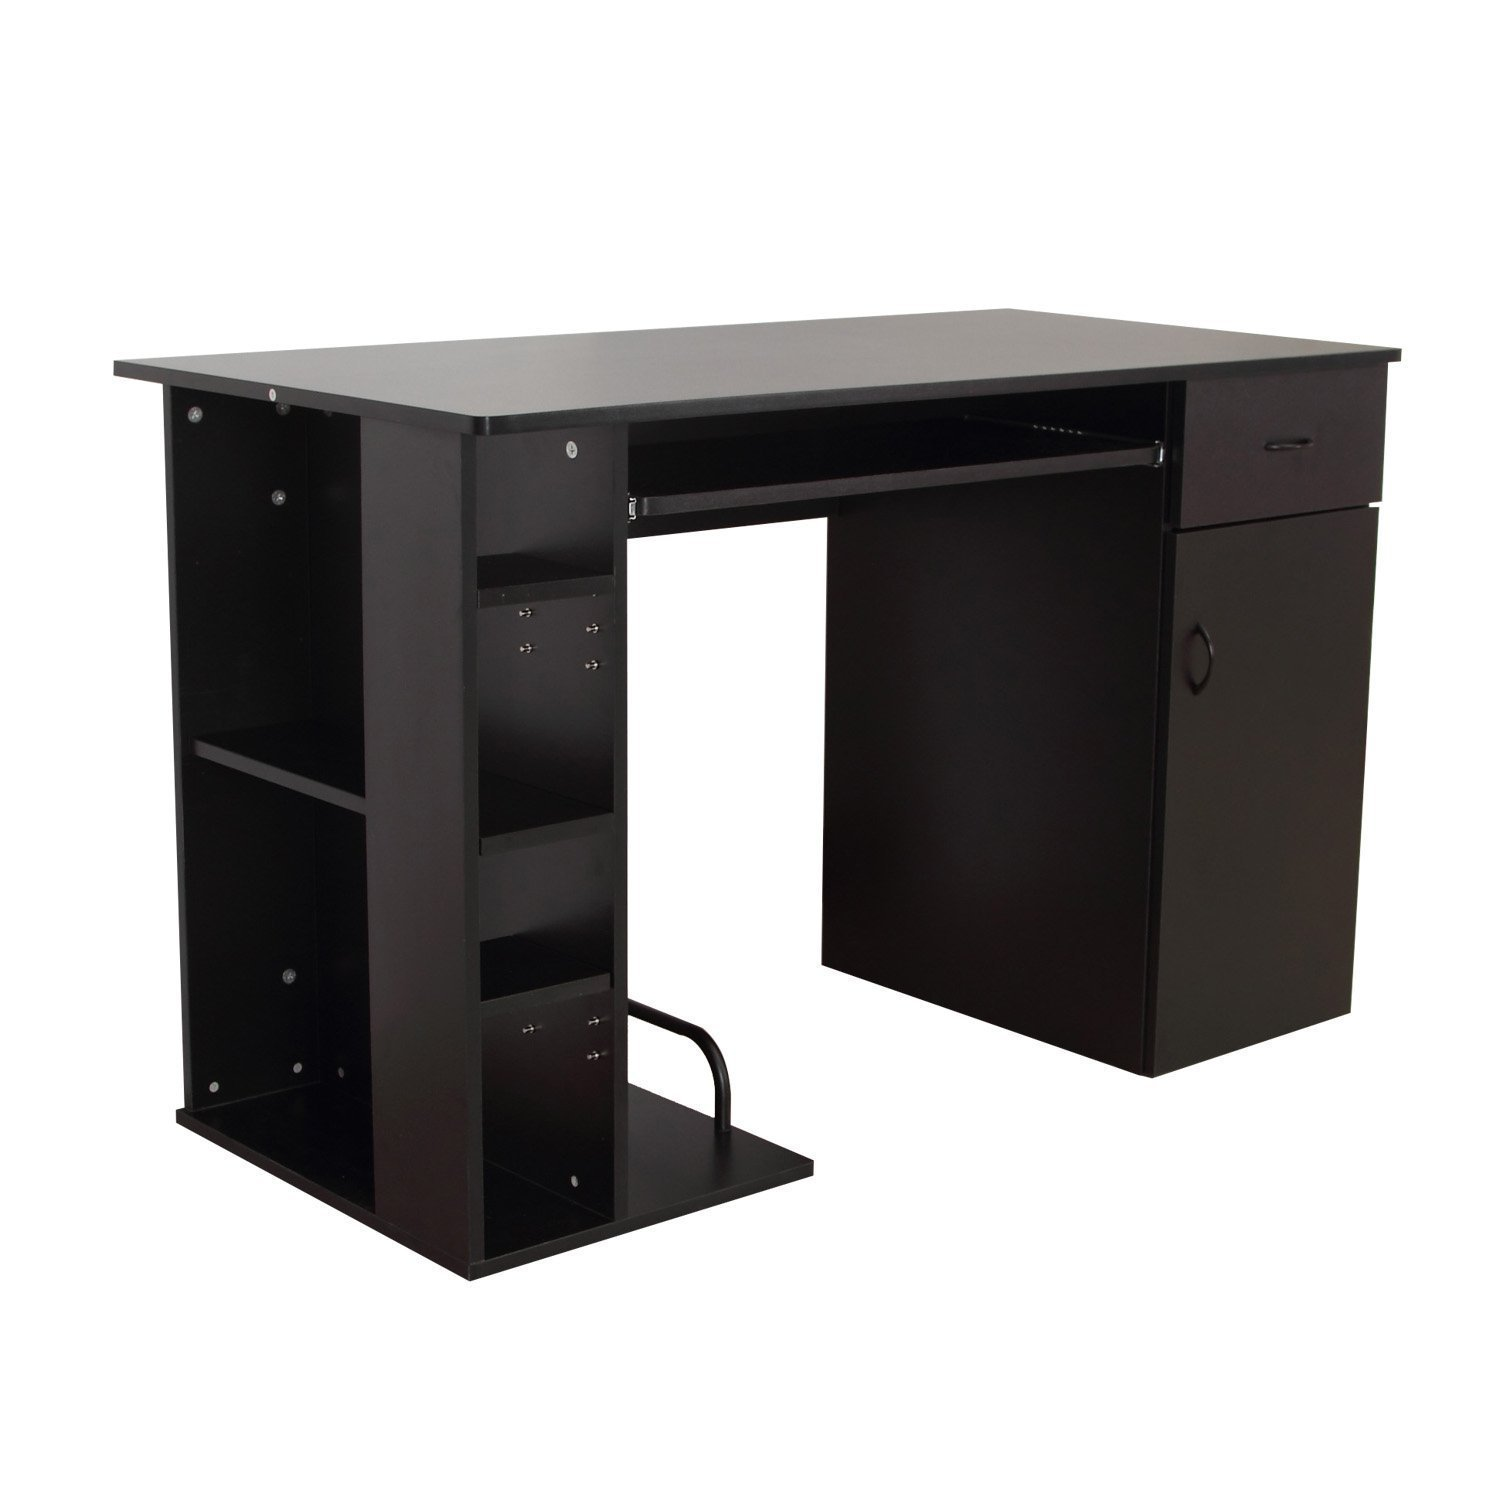 HOMCOM Desk Computer Pc Holder With Shelf Office 74x120x60 Cm Black Keyboard